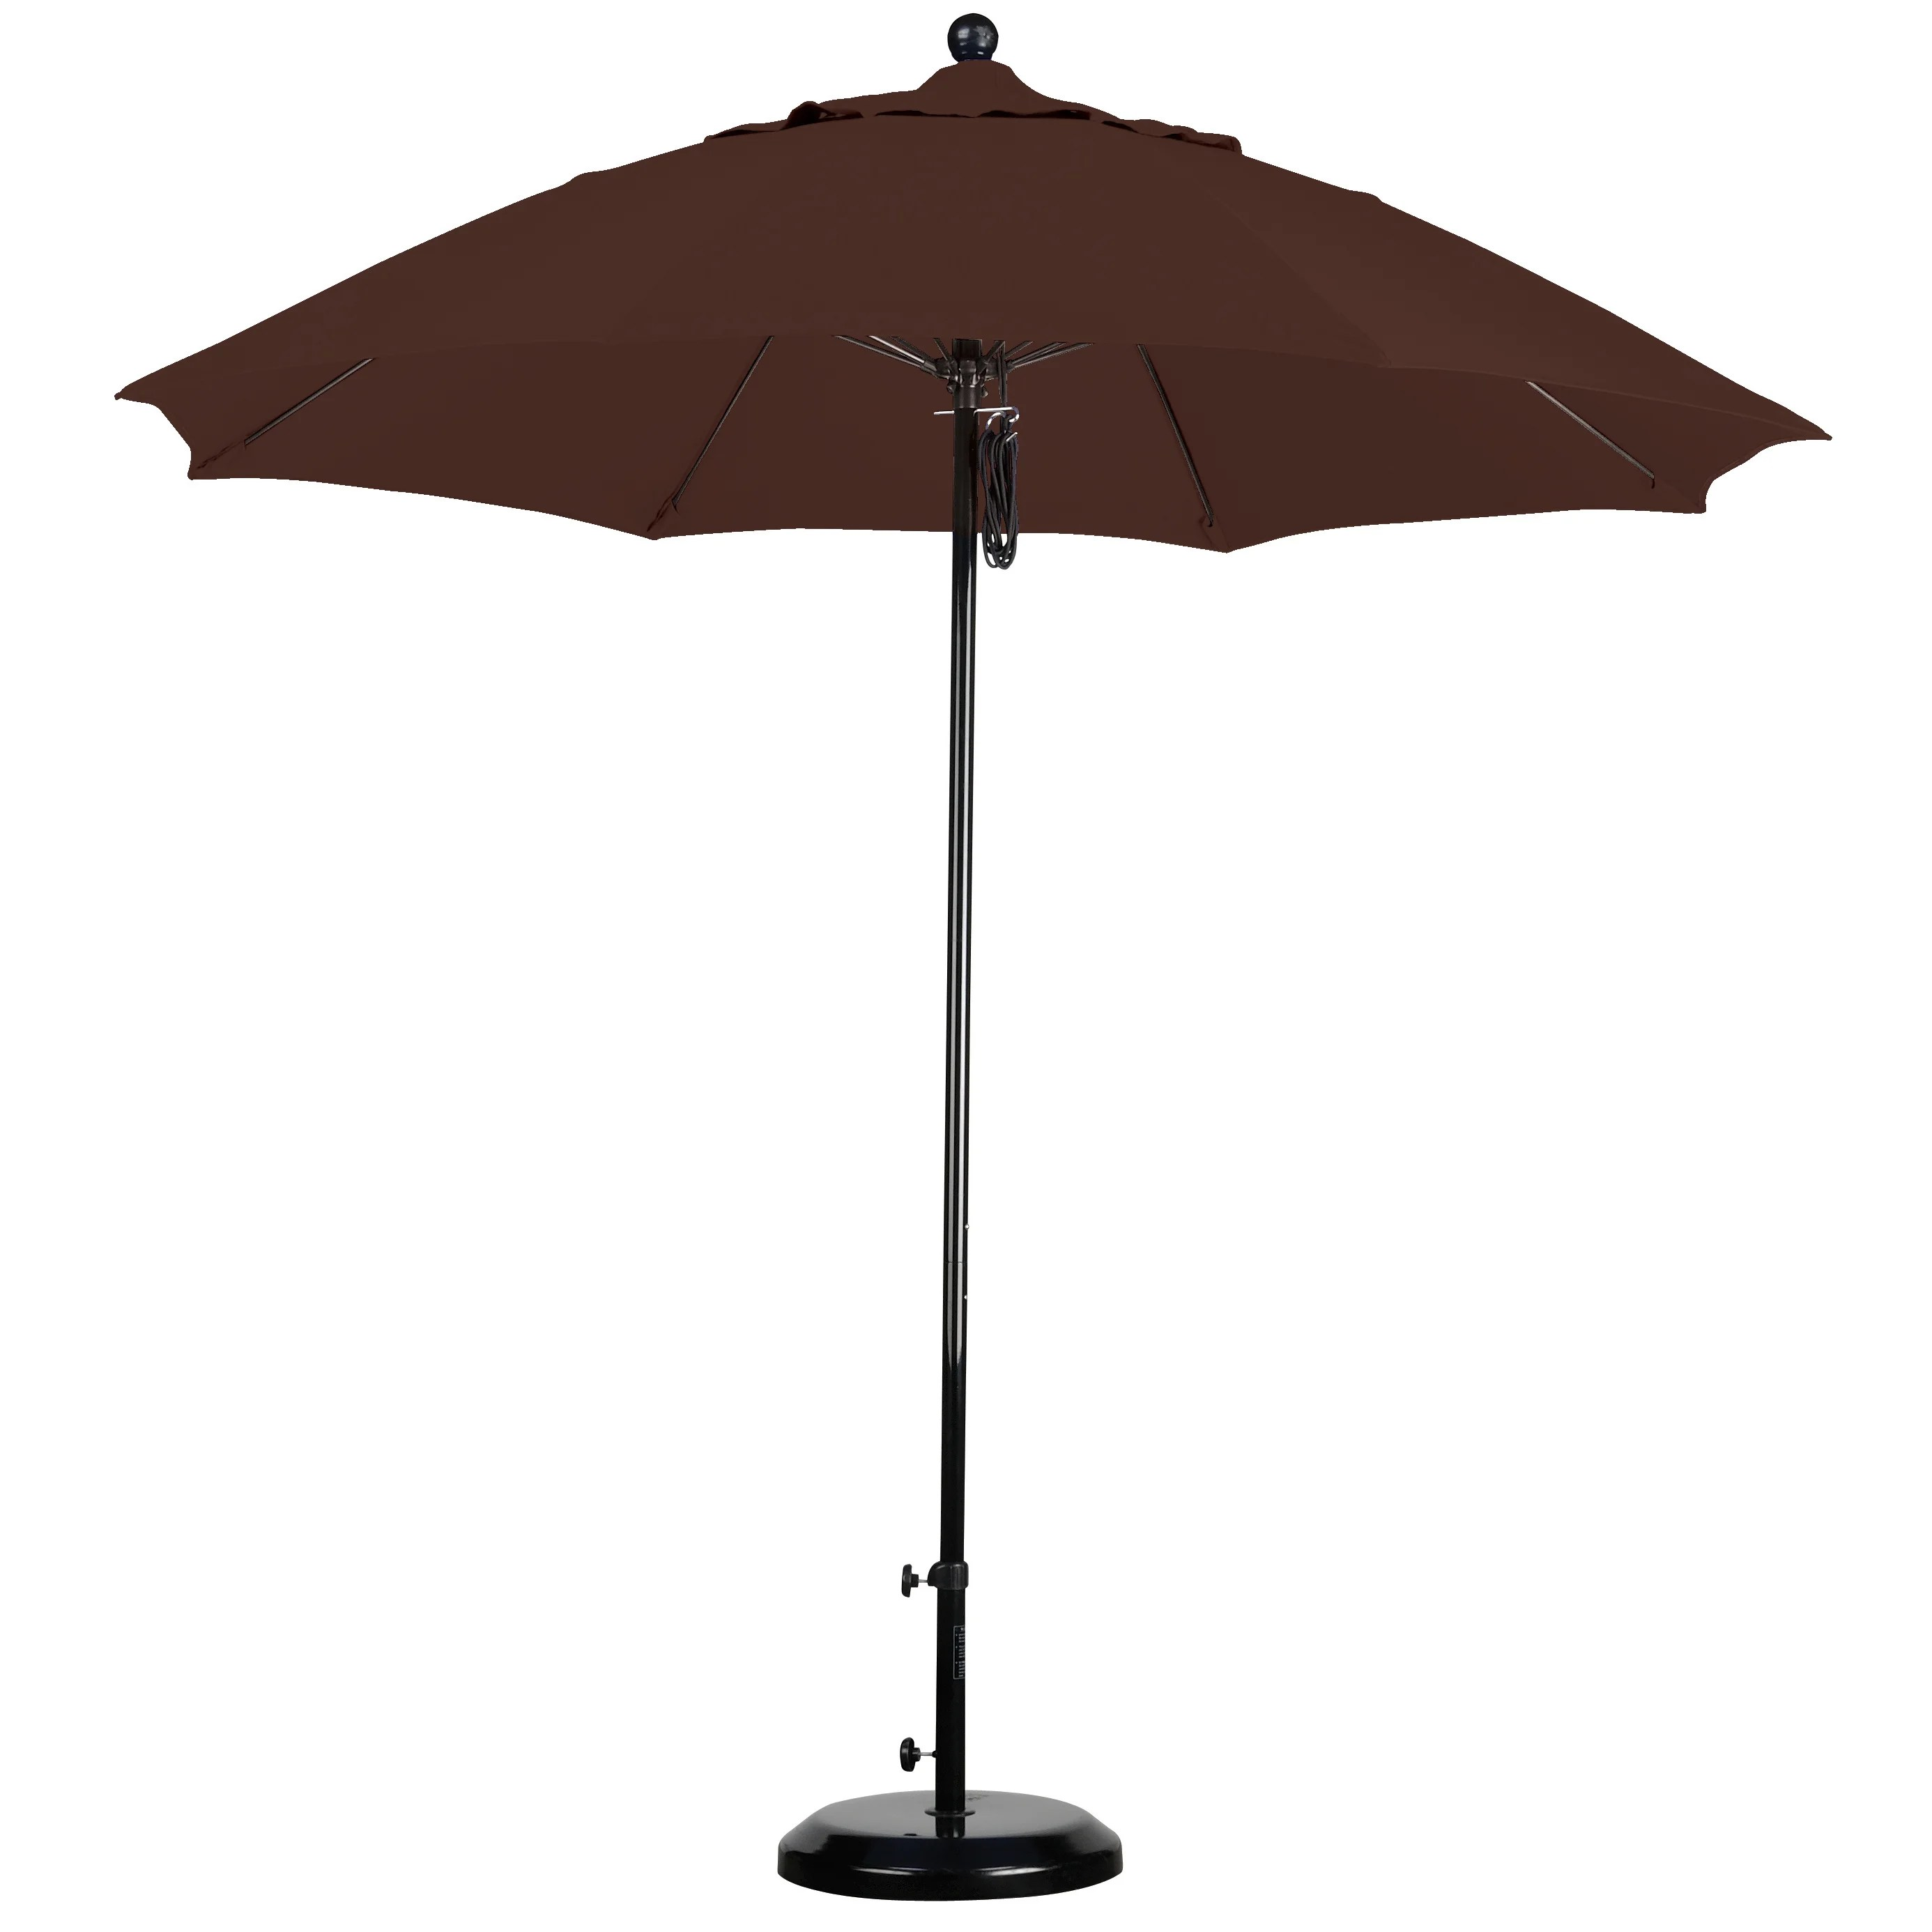 chair king umbrellas spandex covers canada california umbrella 9 39 market and reviews wayfair